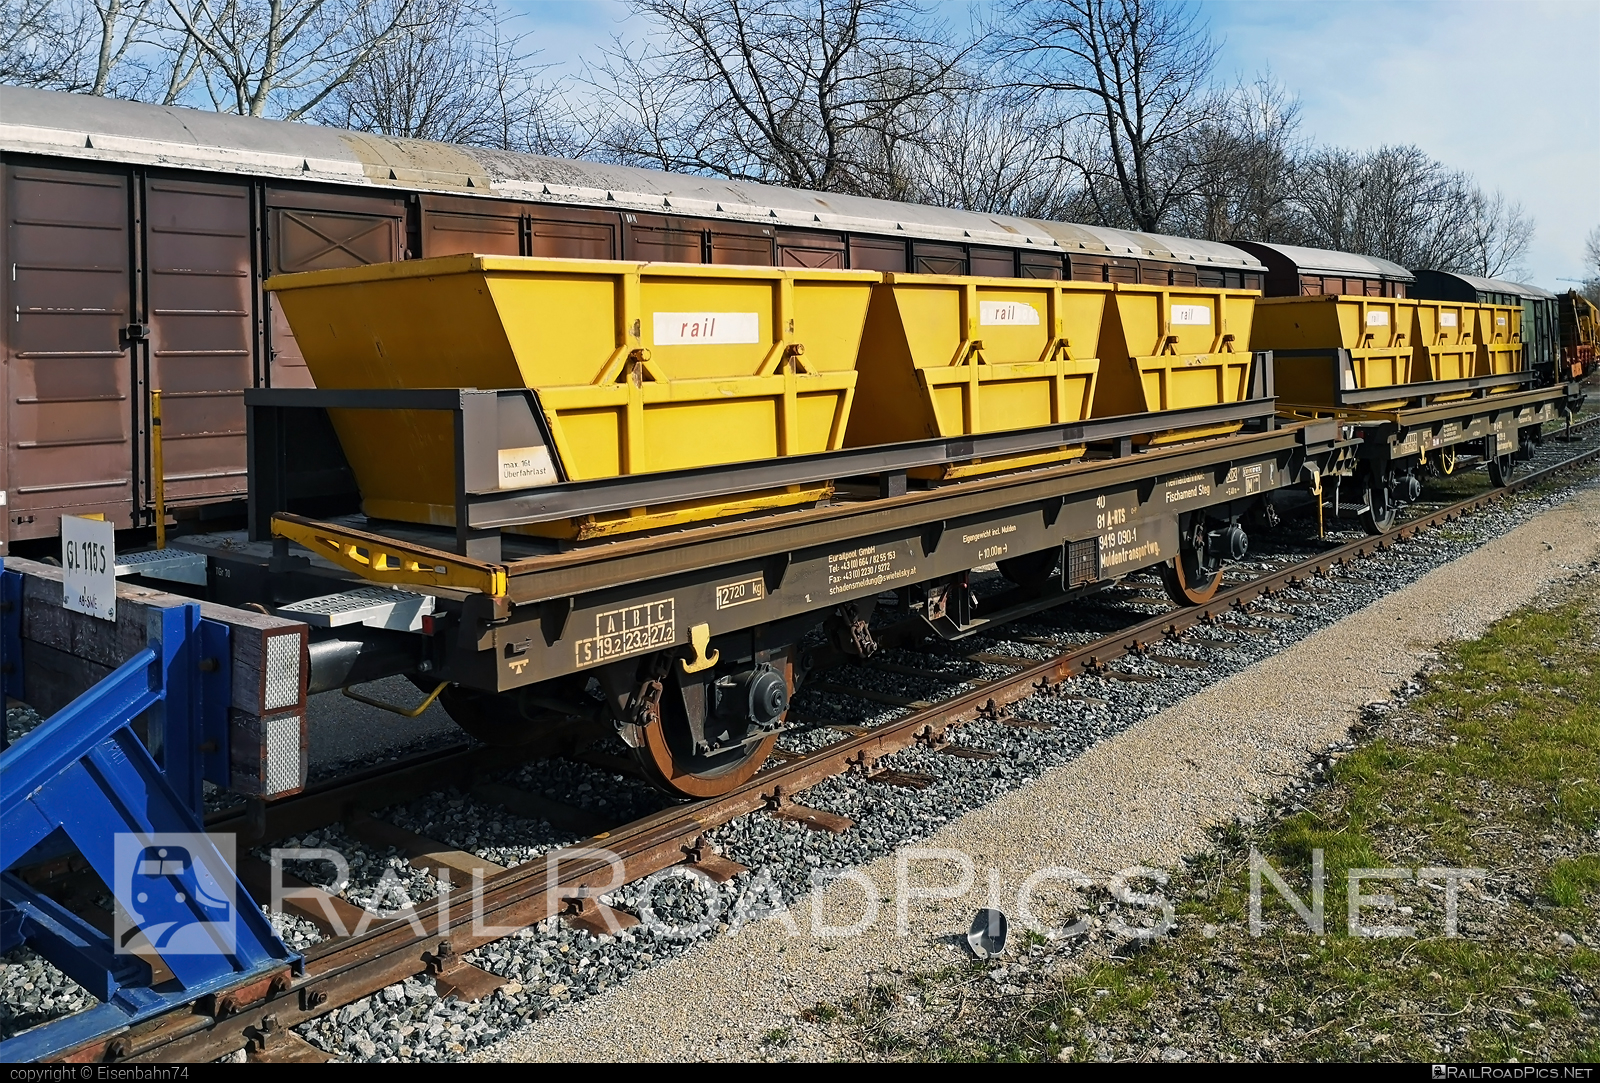 Class Unknown - Unknown - Trough trolley wagon - 40 81 9419 090-1 operated by Eurailpool GmbH #eurailpool #railtransportservicegmbh #rts #rtsrailtransportservice #swietelsky